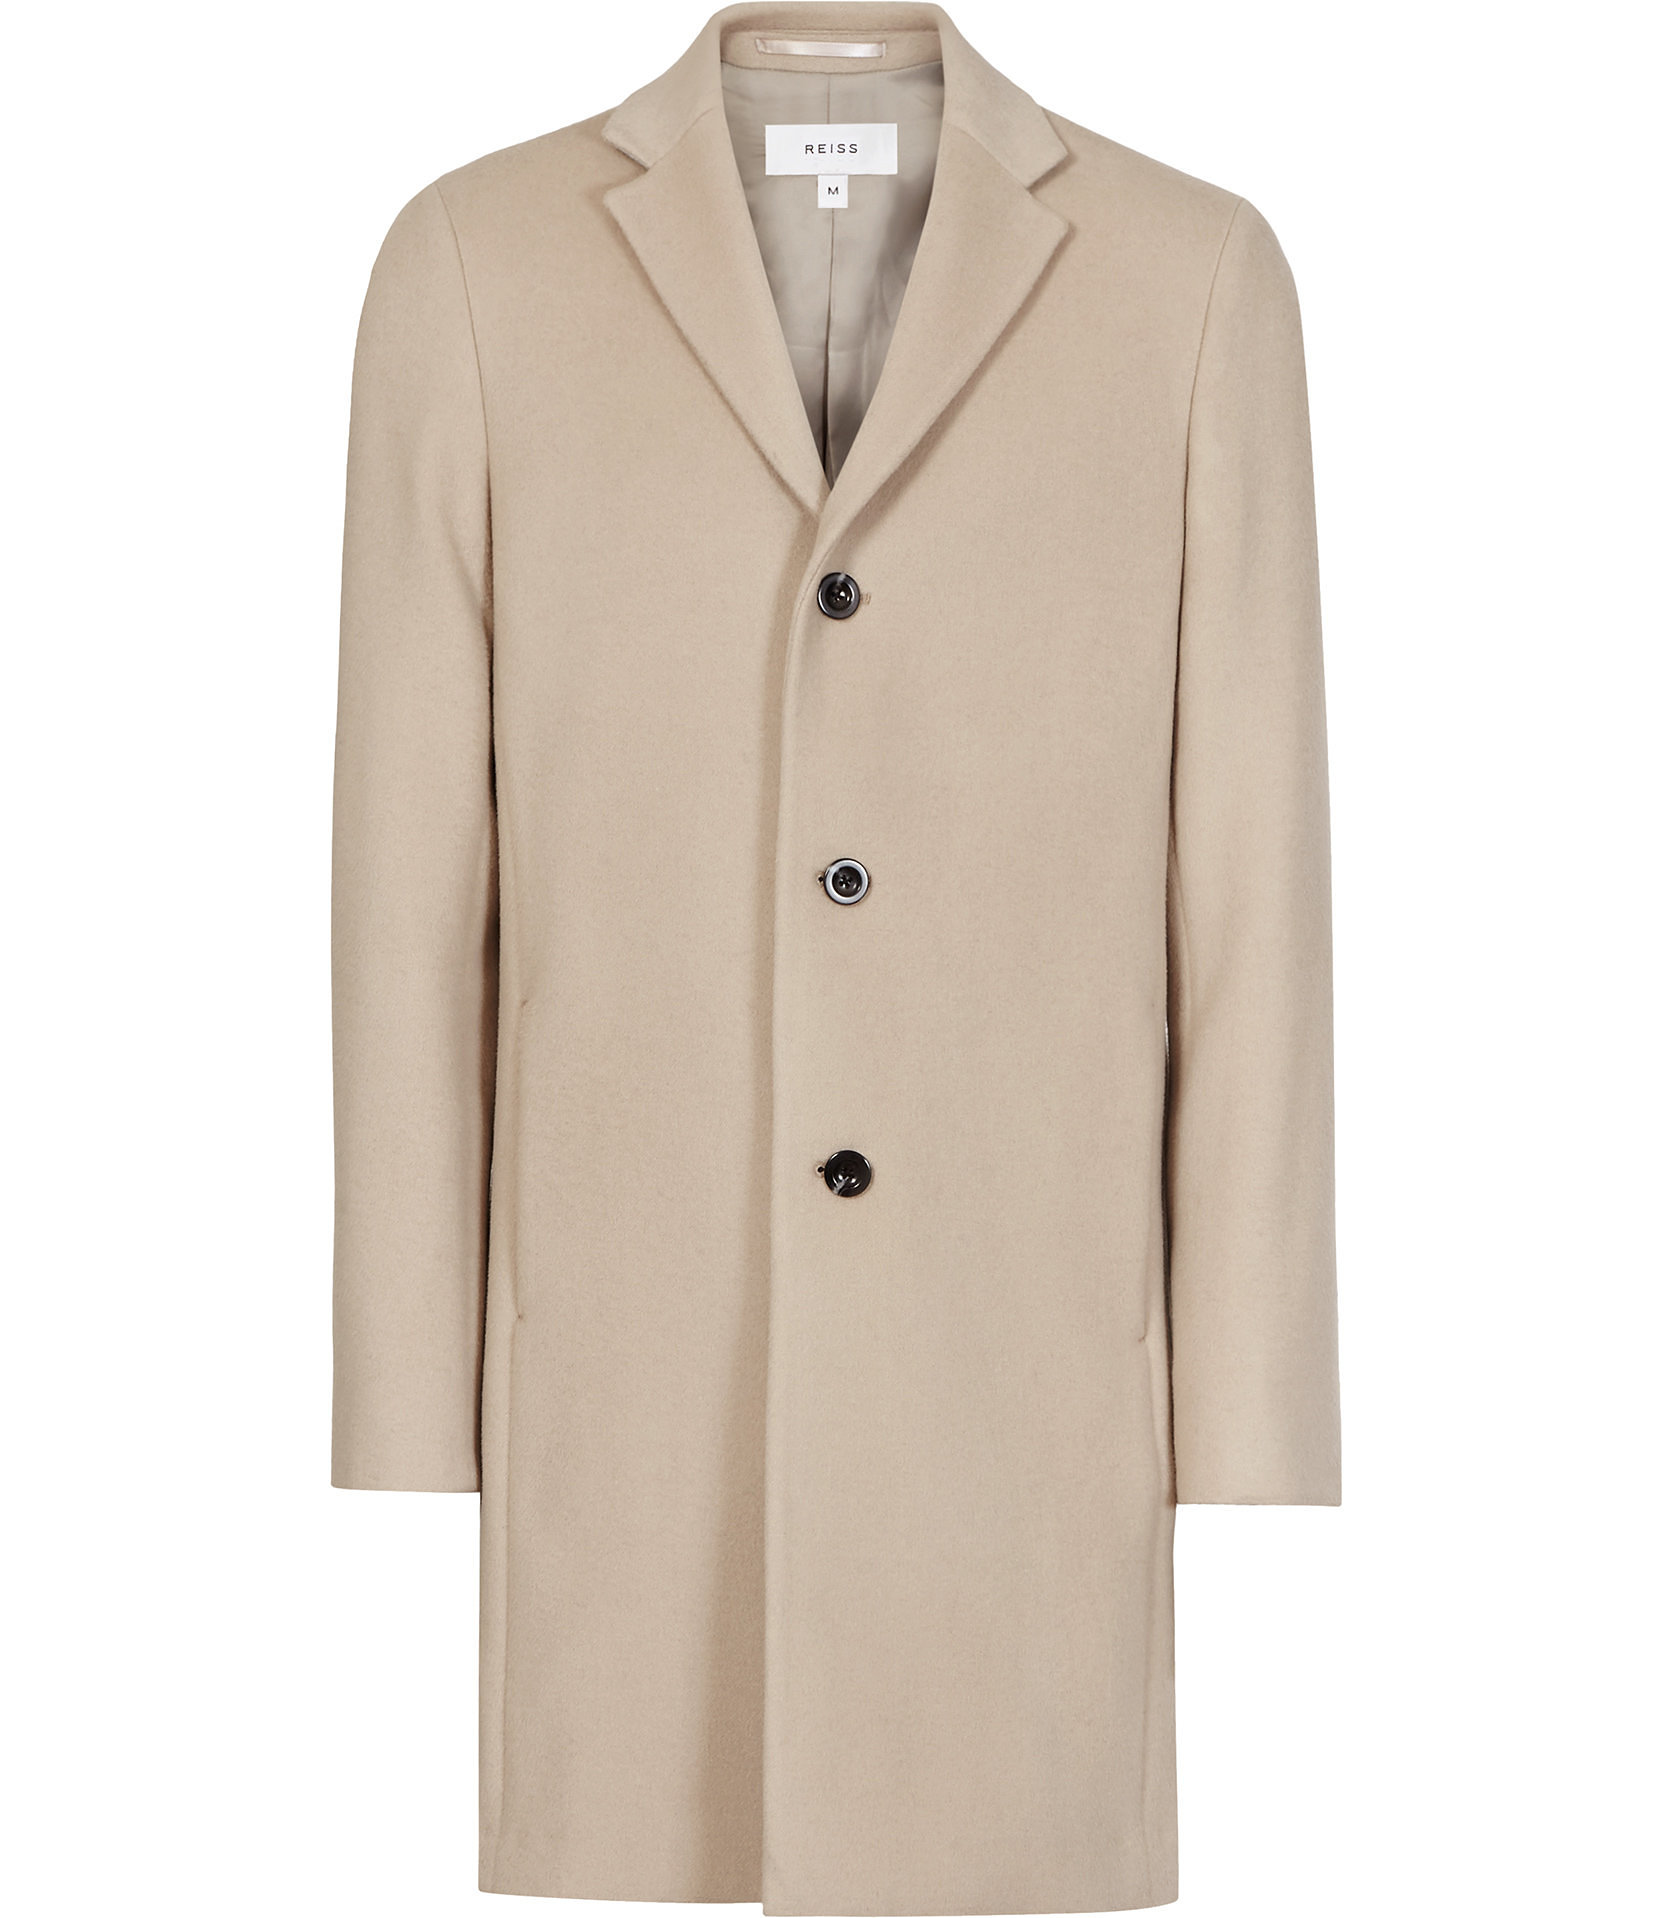 Reiss Beige Overcoat